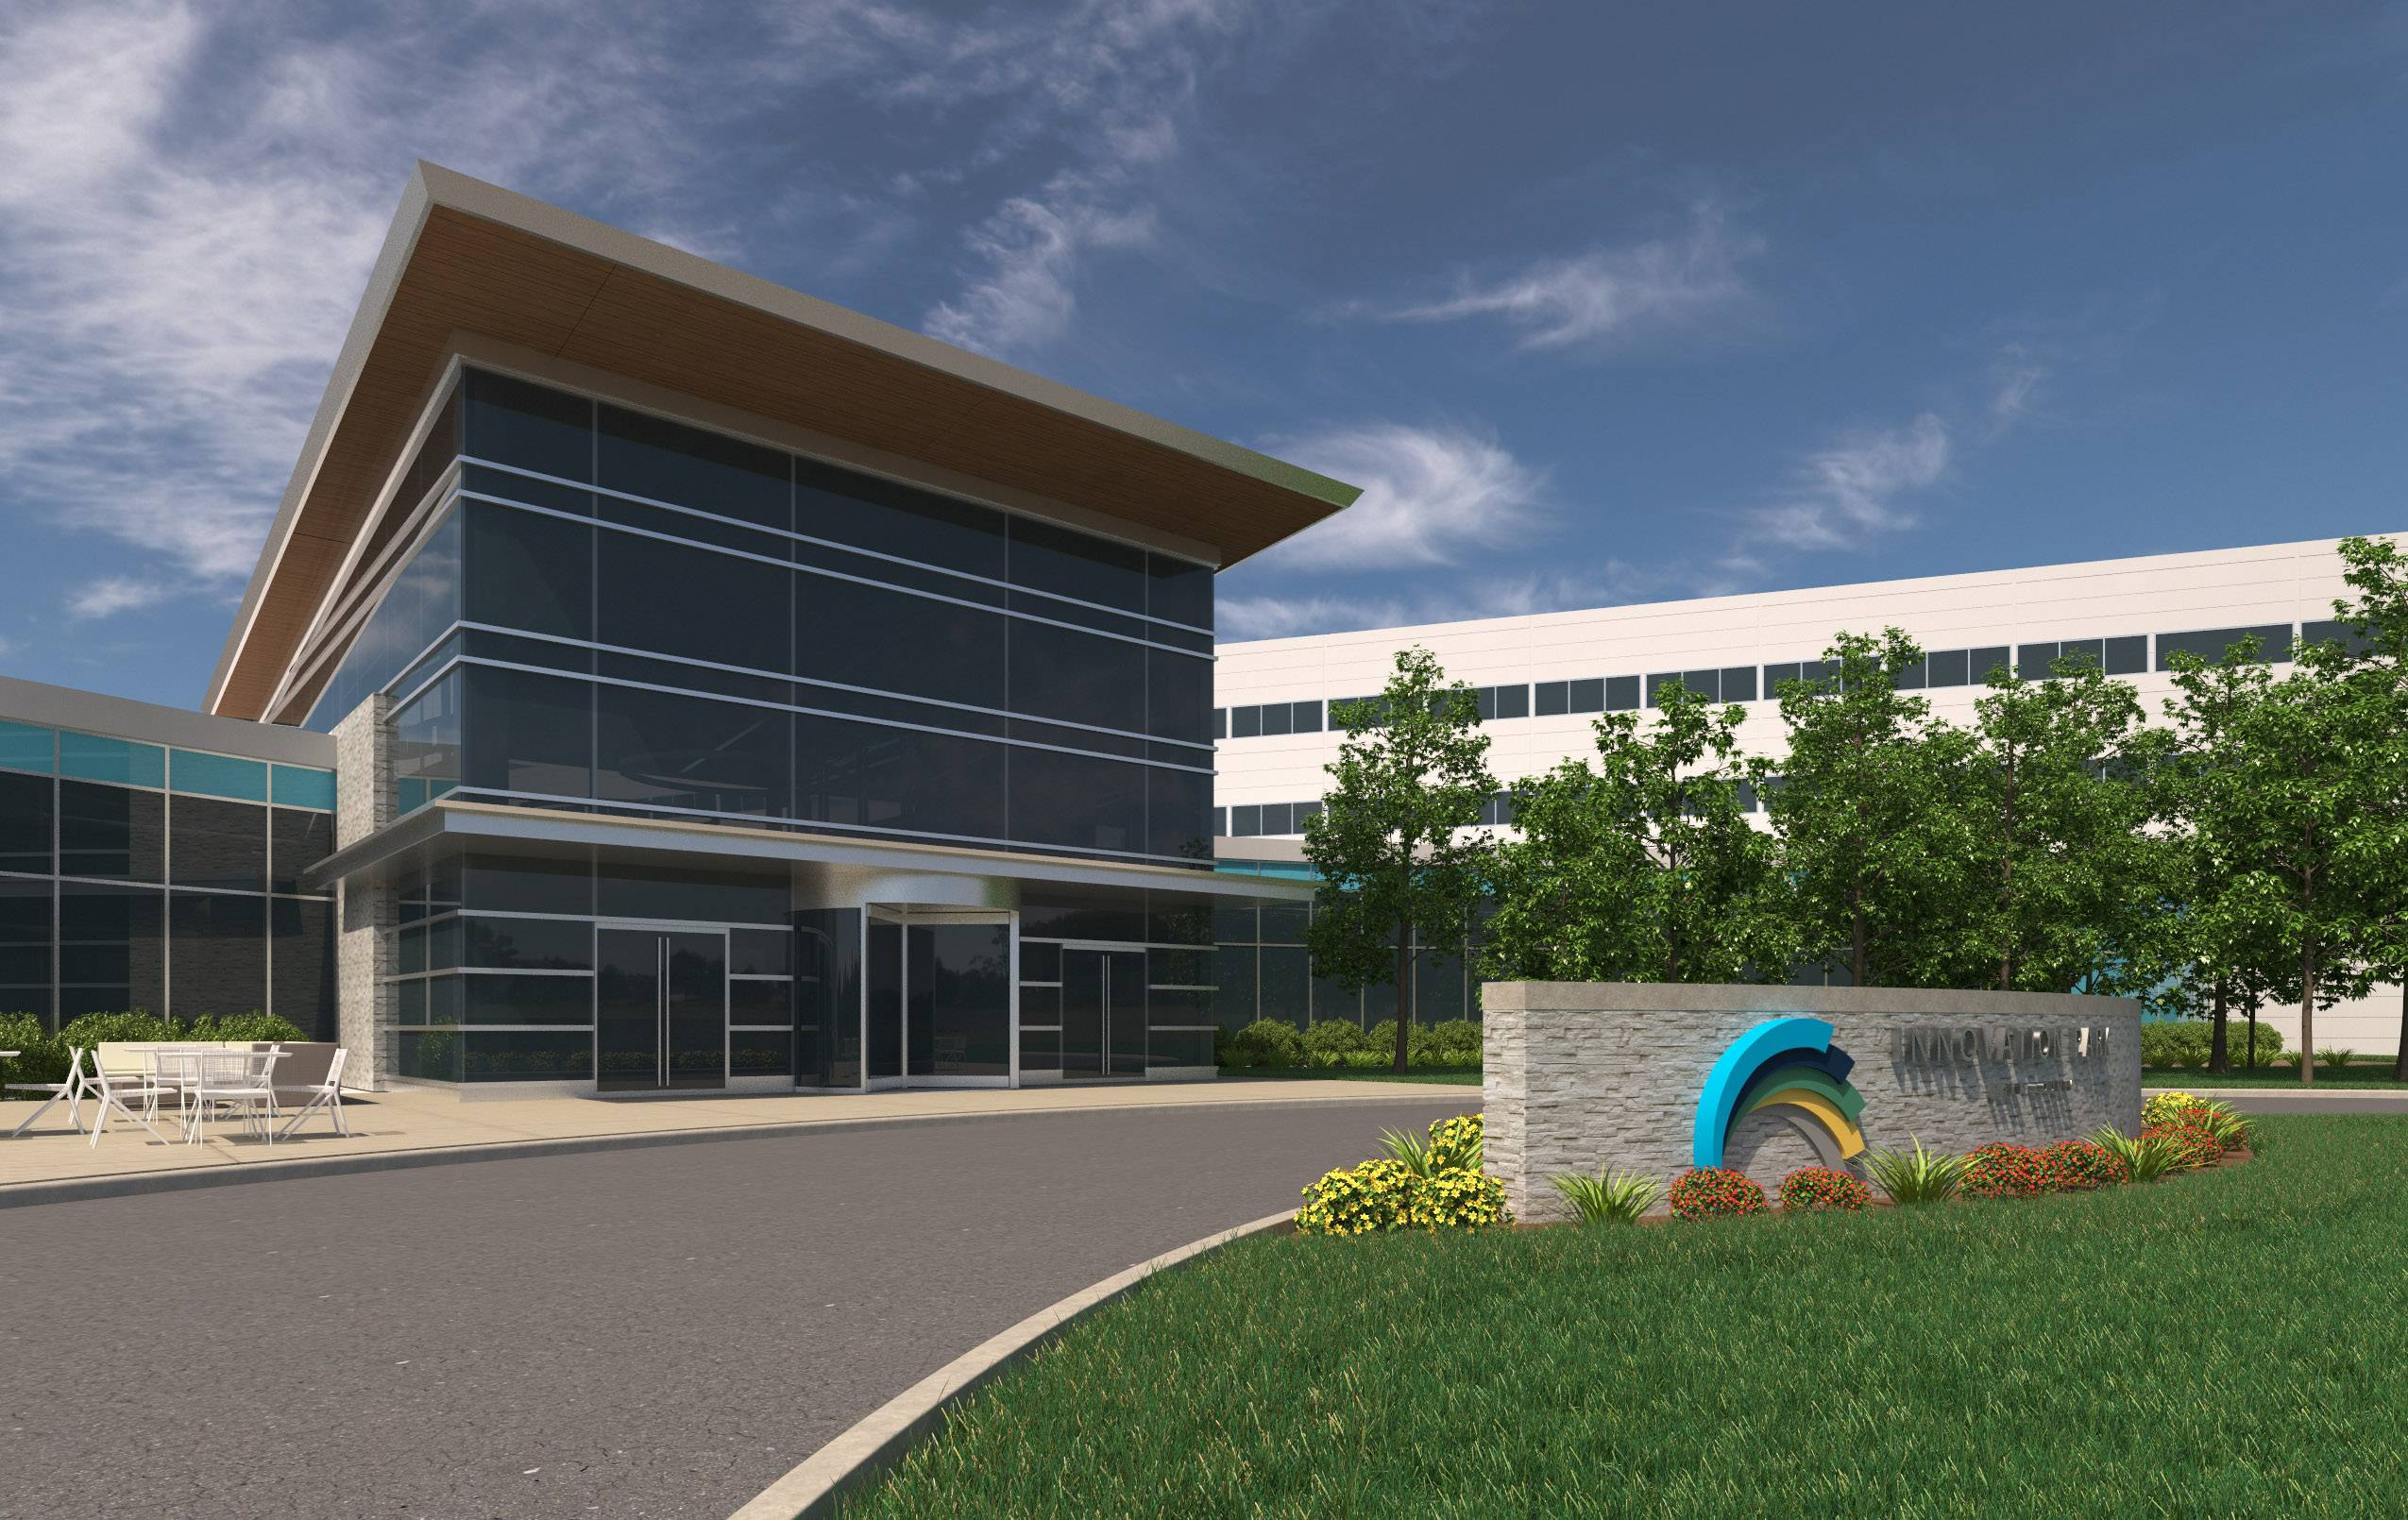 A rendering of a new main entry planned by BECO Midwest for the former Motorola campus on Route 45 in Libertyville.